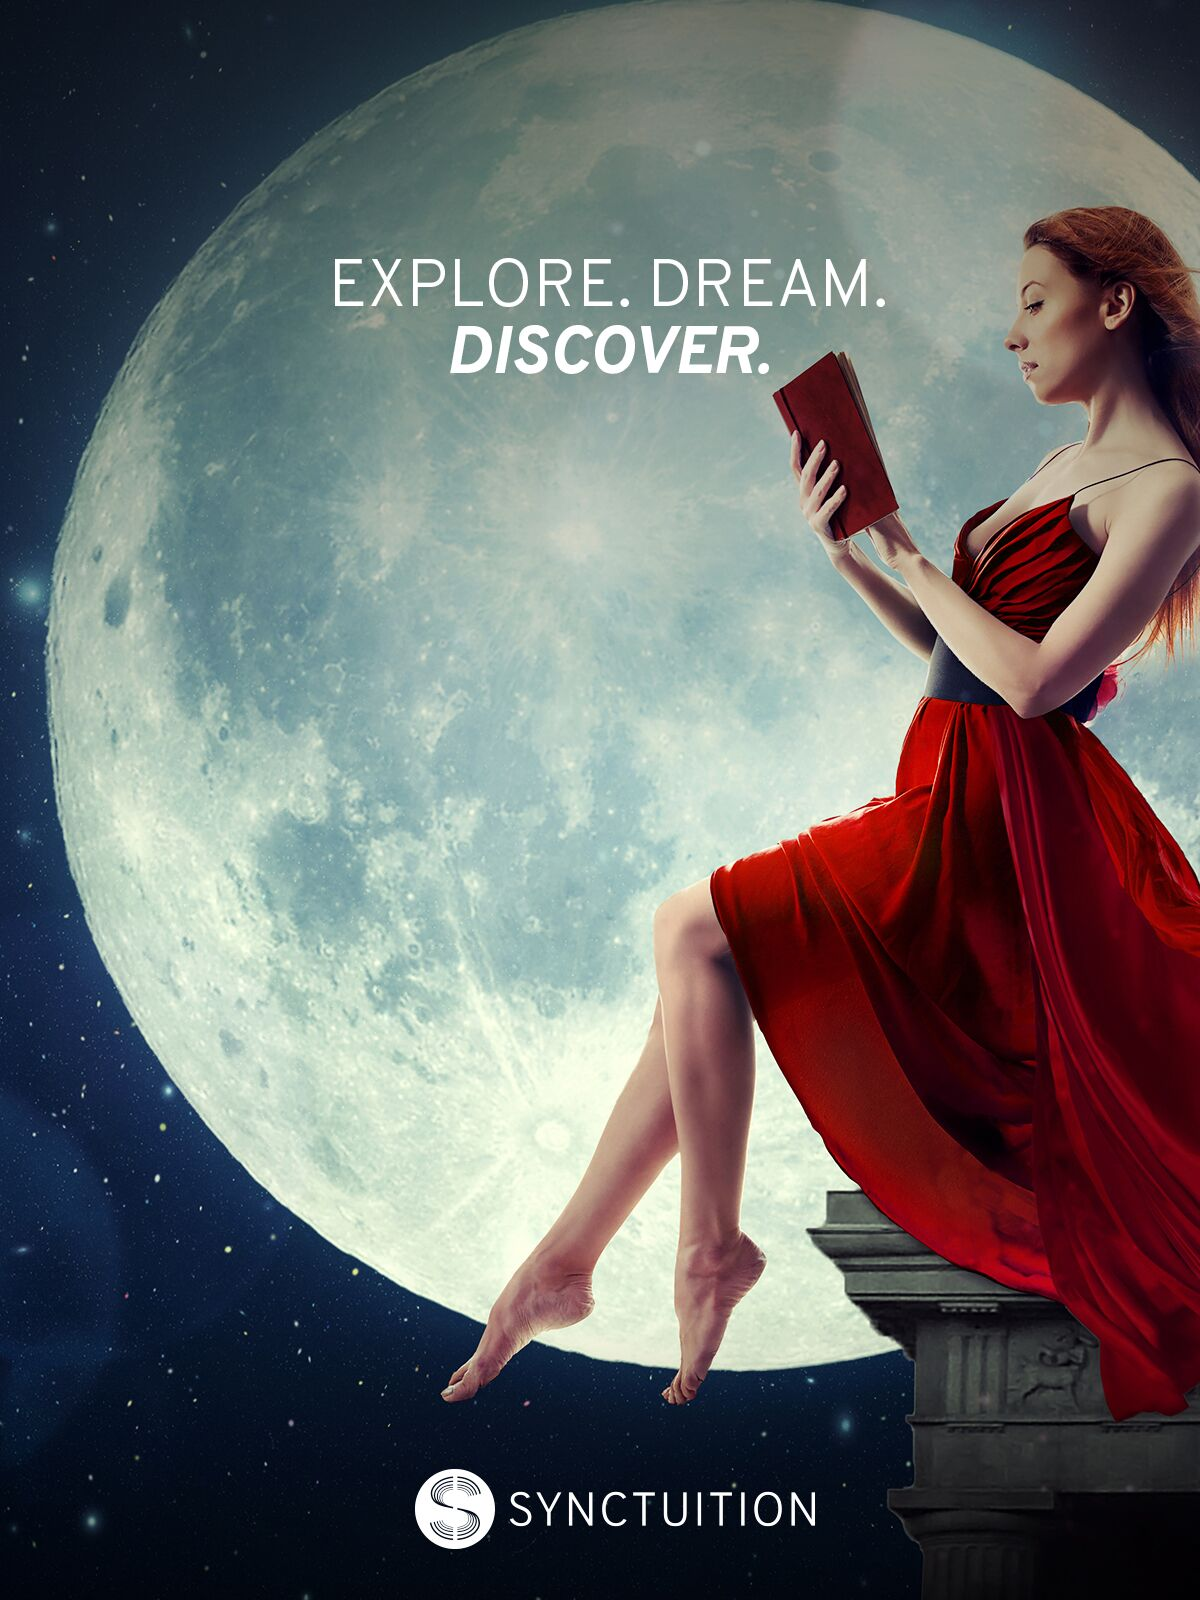 Quote on explorations and dreams with a mesmerizing moon scene and a woman